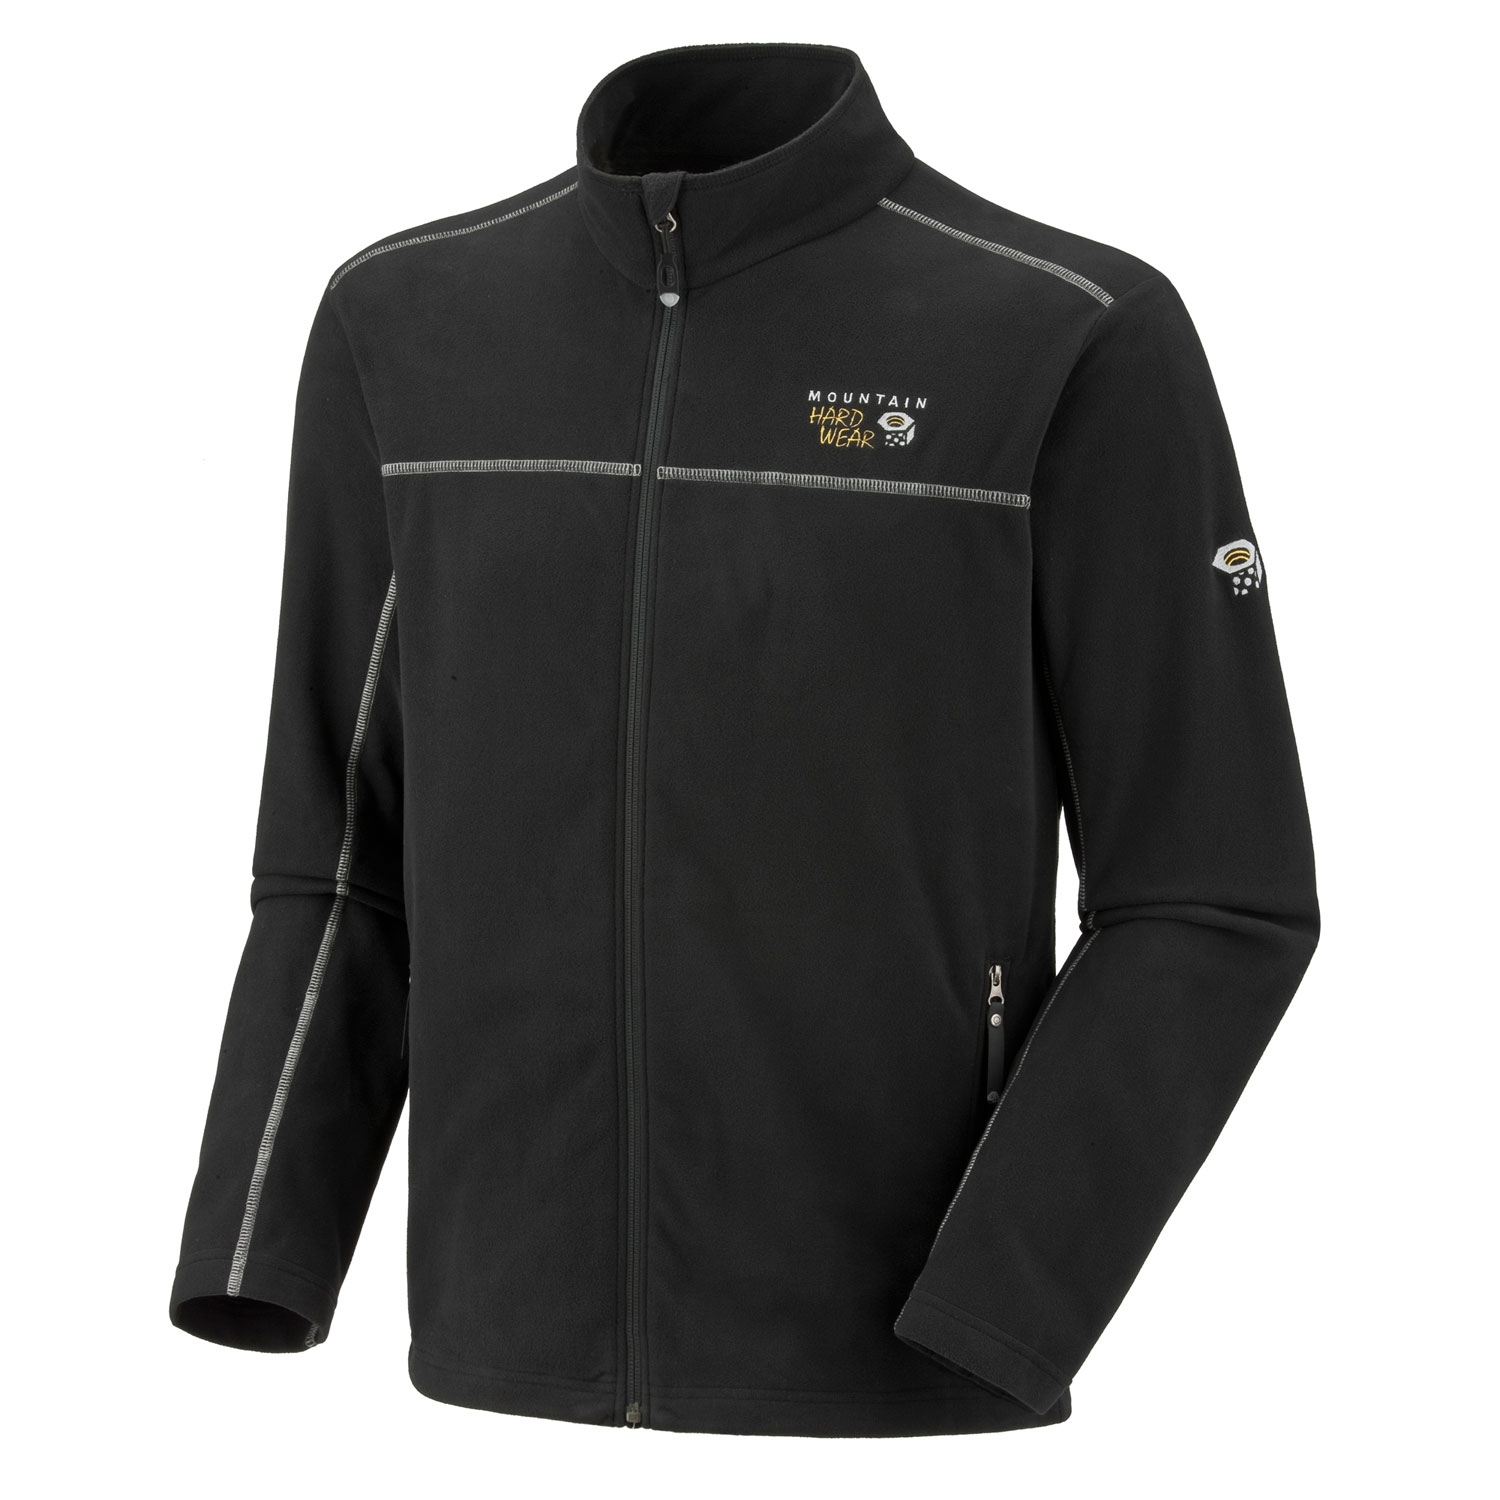 "Key Features of the Mountain Hardwear Microchill Fleece: Avg. weight: 13 oz; 356g Center back length: 38.5"" Fabric: body: Velous Micro Fleece (100% polyester) Zippered handwarmer pockets Dual hem drawcords for quick fit adjustments Micro-Chamois - lined chin guard - $67.95"